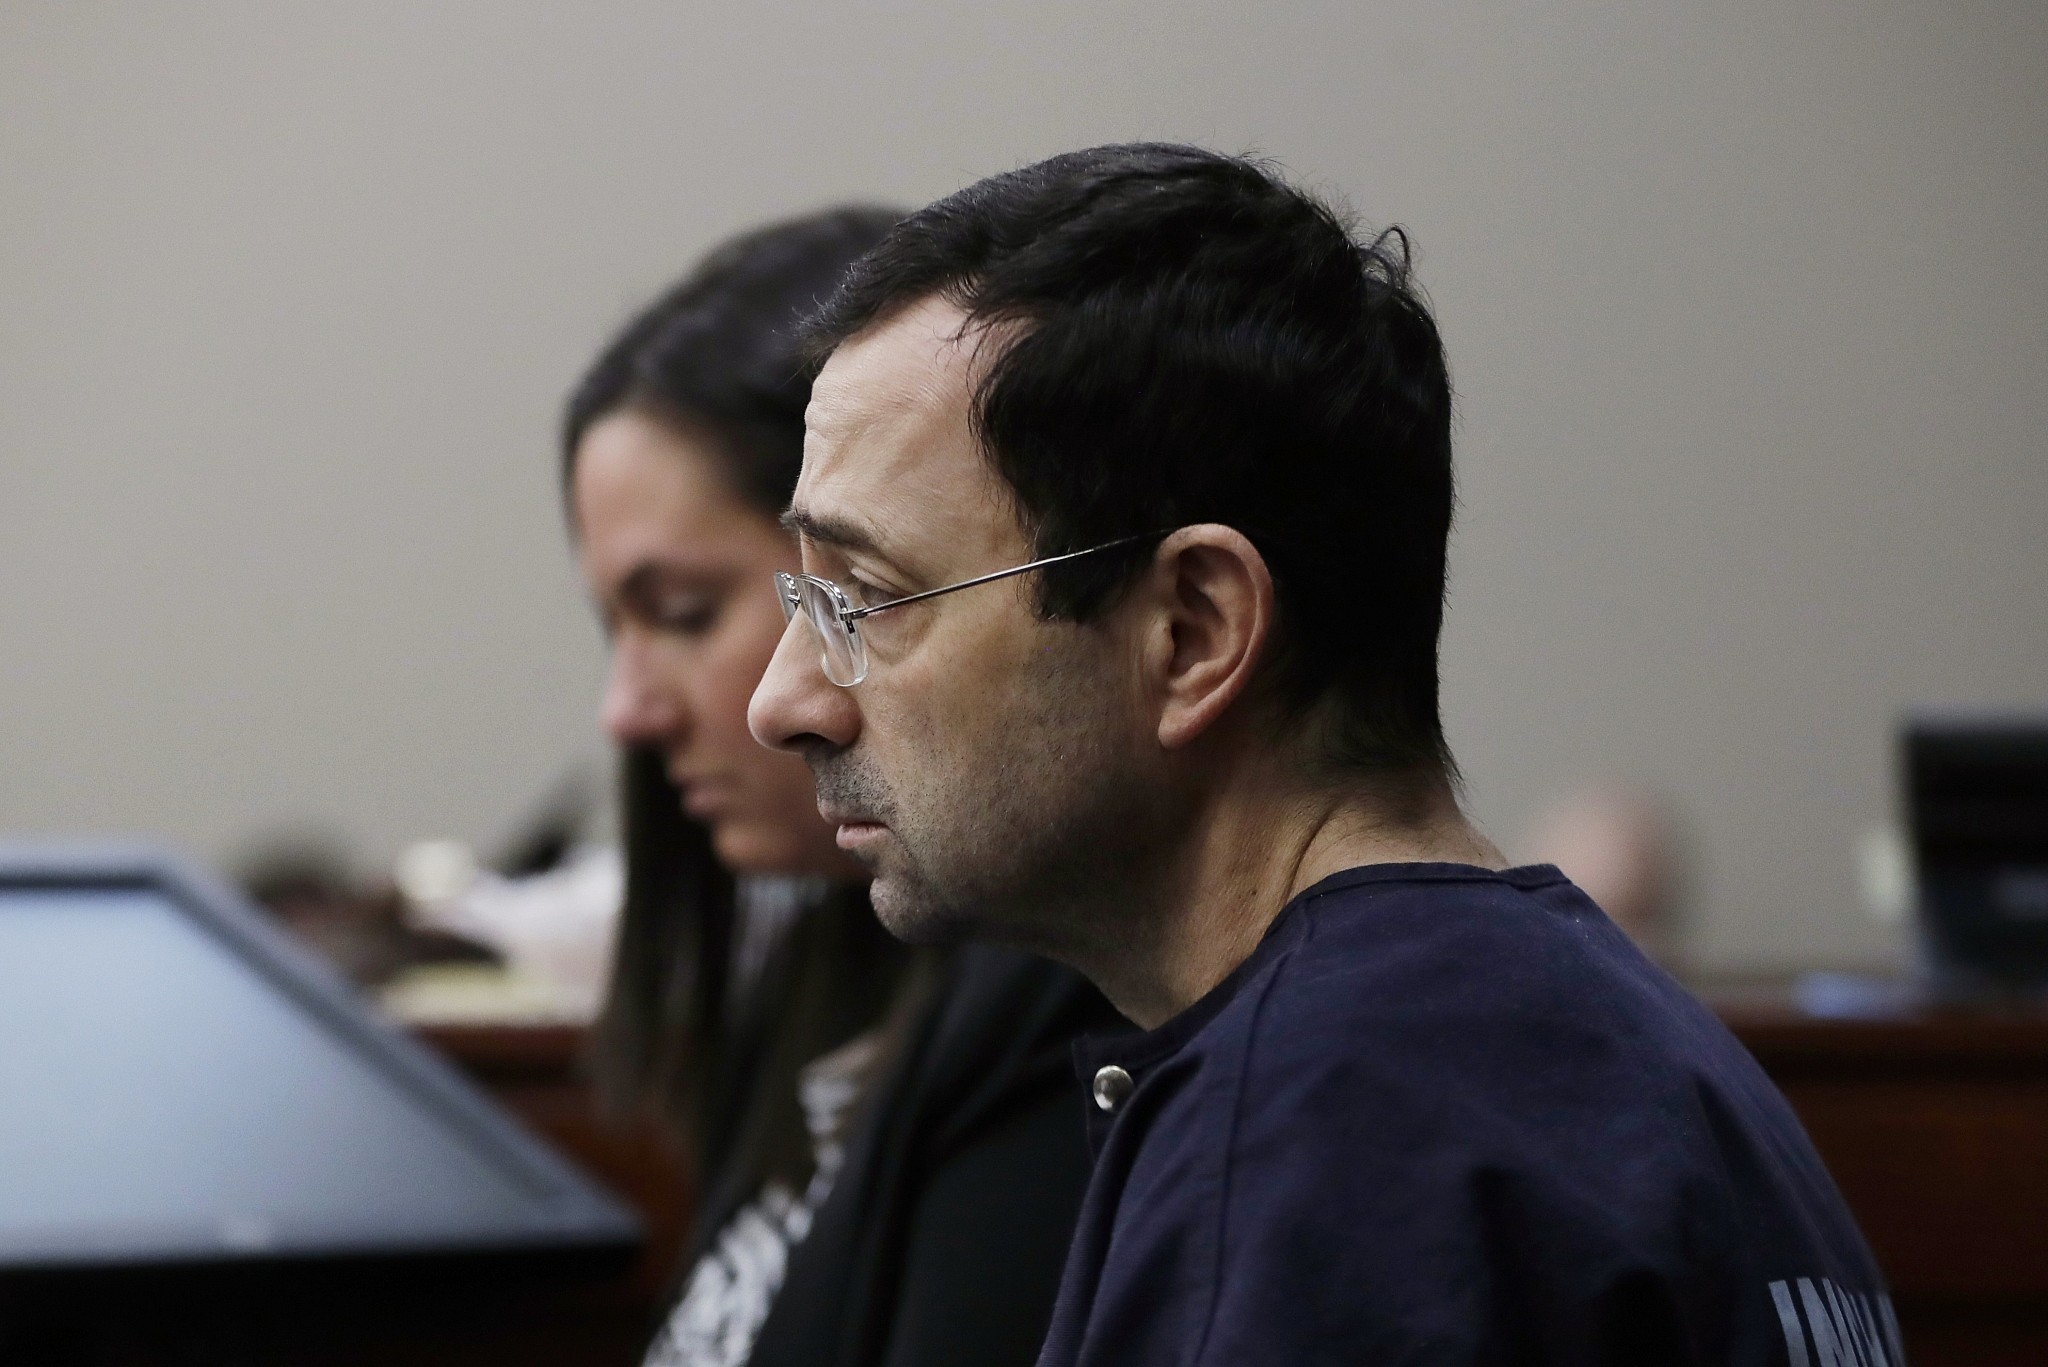 More victims confront Larry Nassar on day 6 of his sentencing hearing